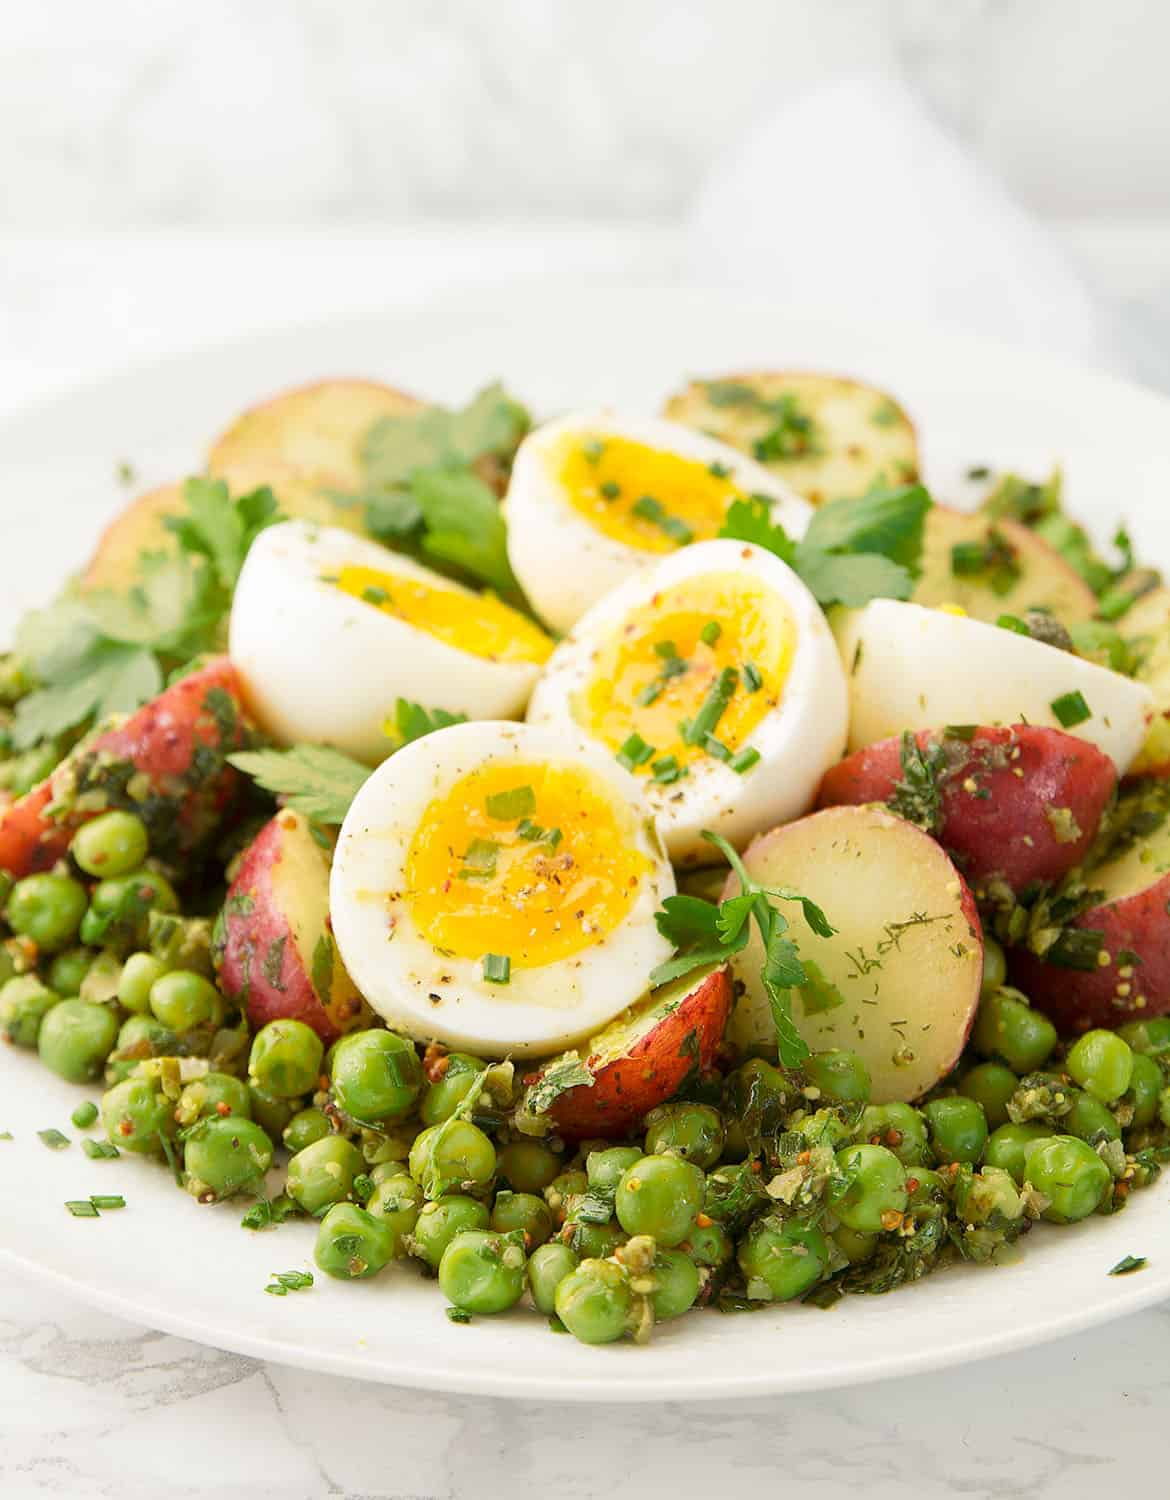 This is a delicious potato and egg salad with peas super easy to throw together, you need just a few basic and inexpensive ingredients like potatoes, eggs, frozen peas and fresh herbs. And not only is it perfect for a picnic, but it makes a nice and healthy lunch all year round.